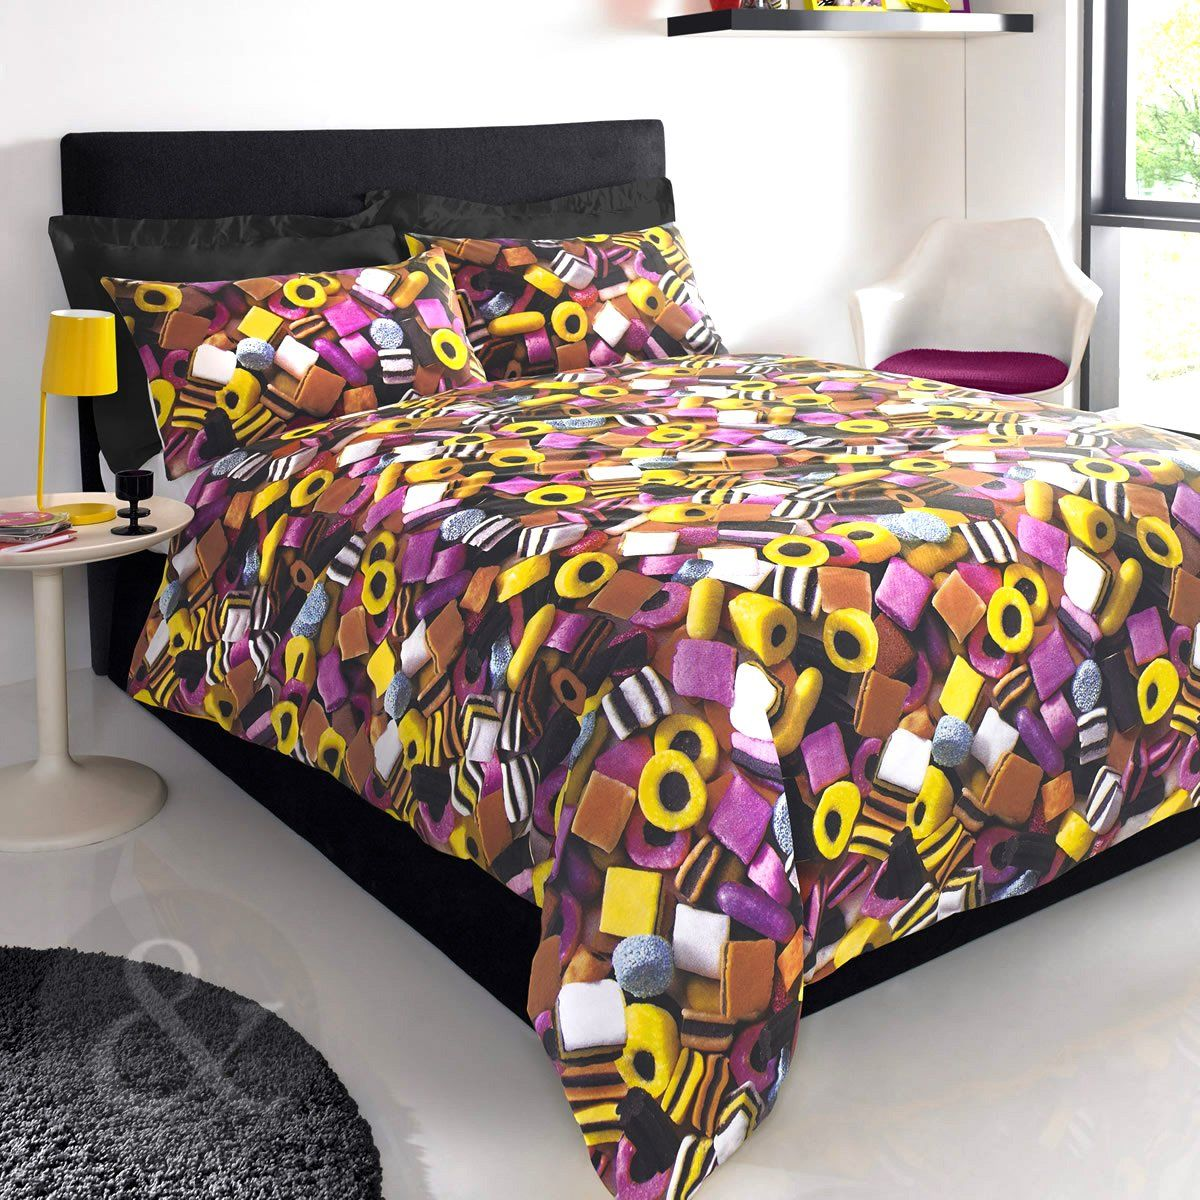 Bedding Liquorice Sweets Duvet Cover Pink Yellow Chocolate Brown Set